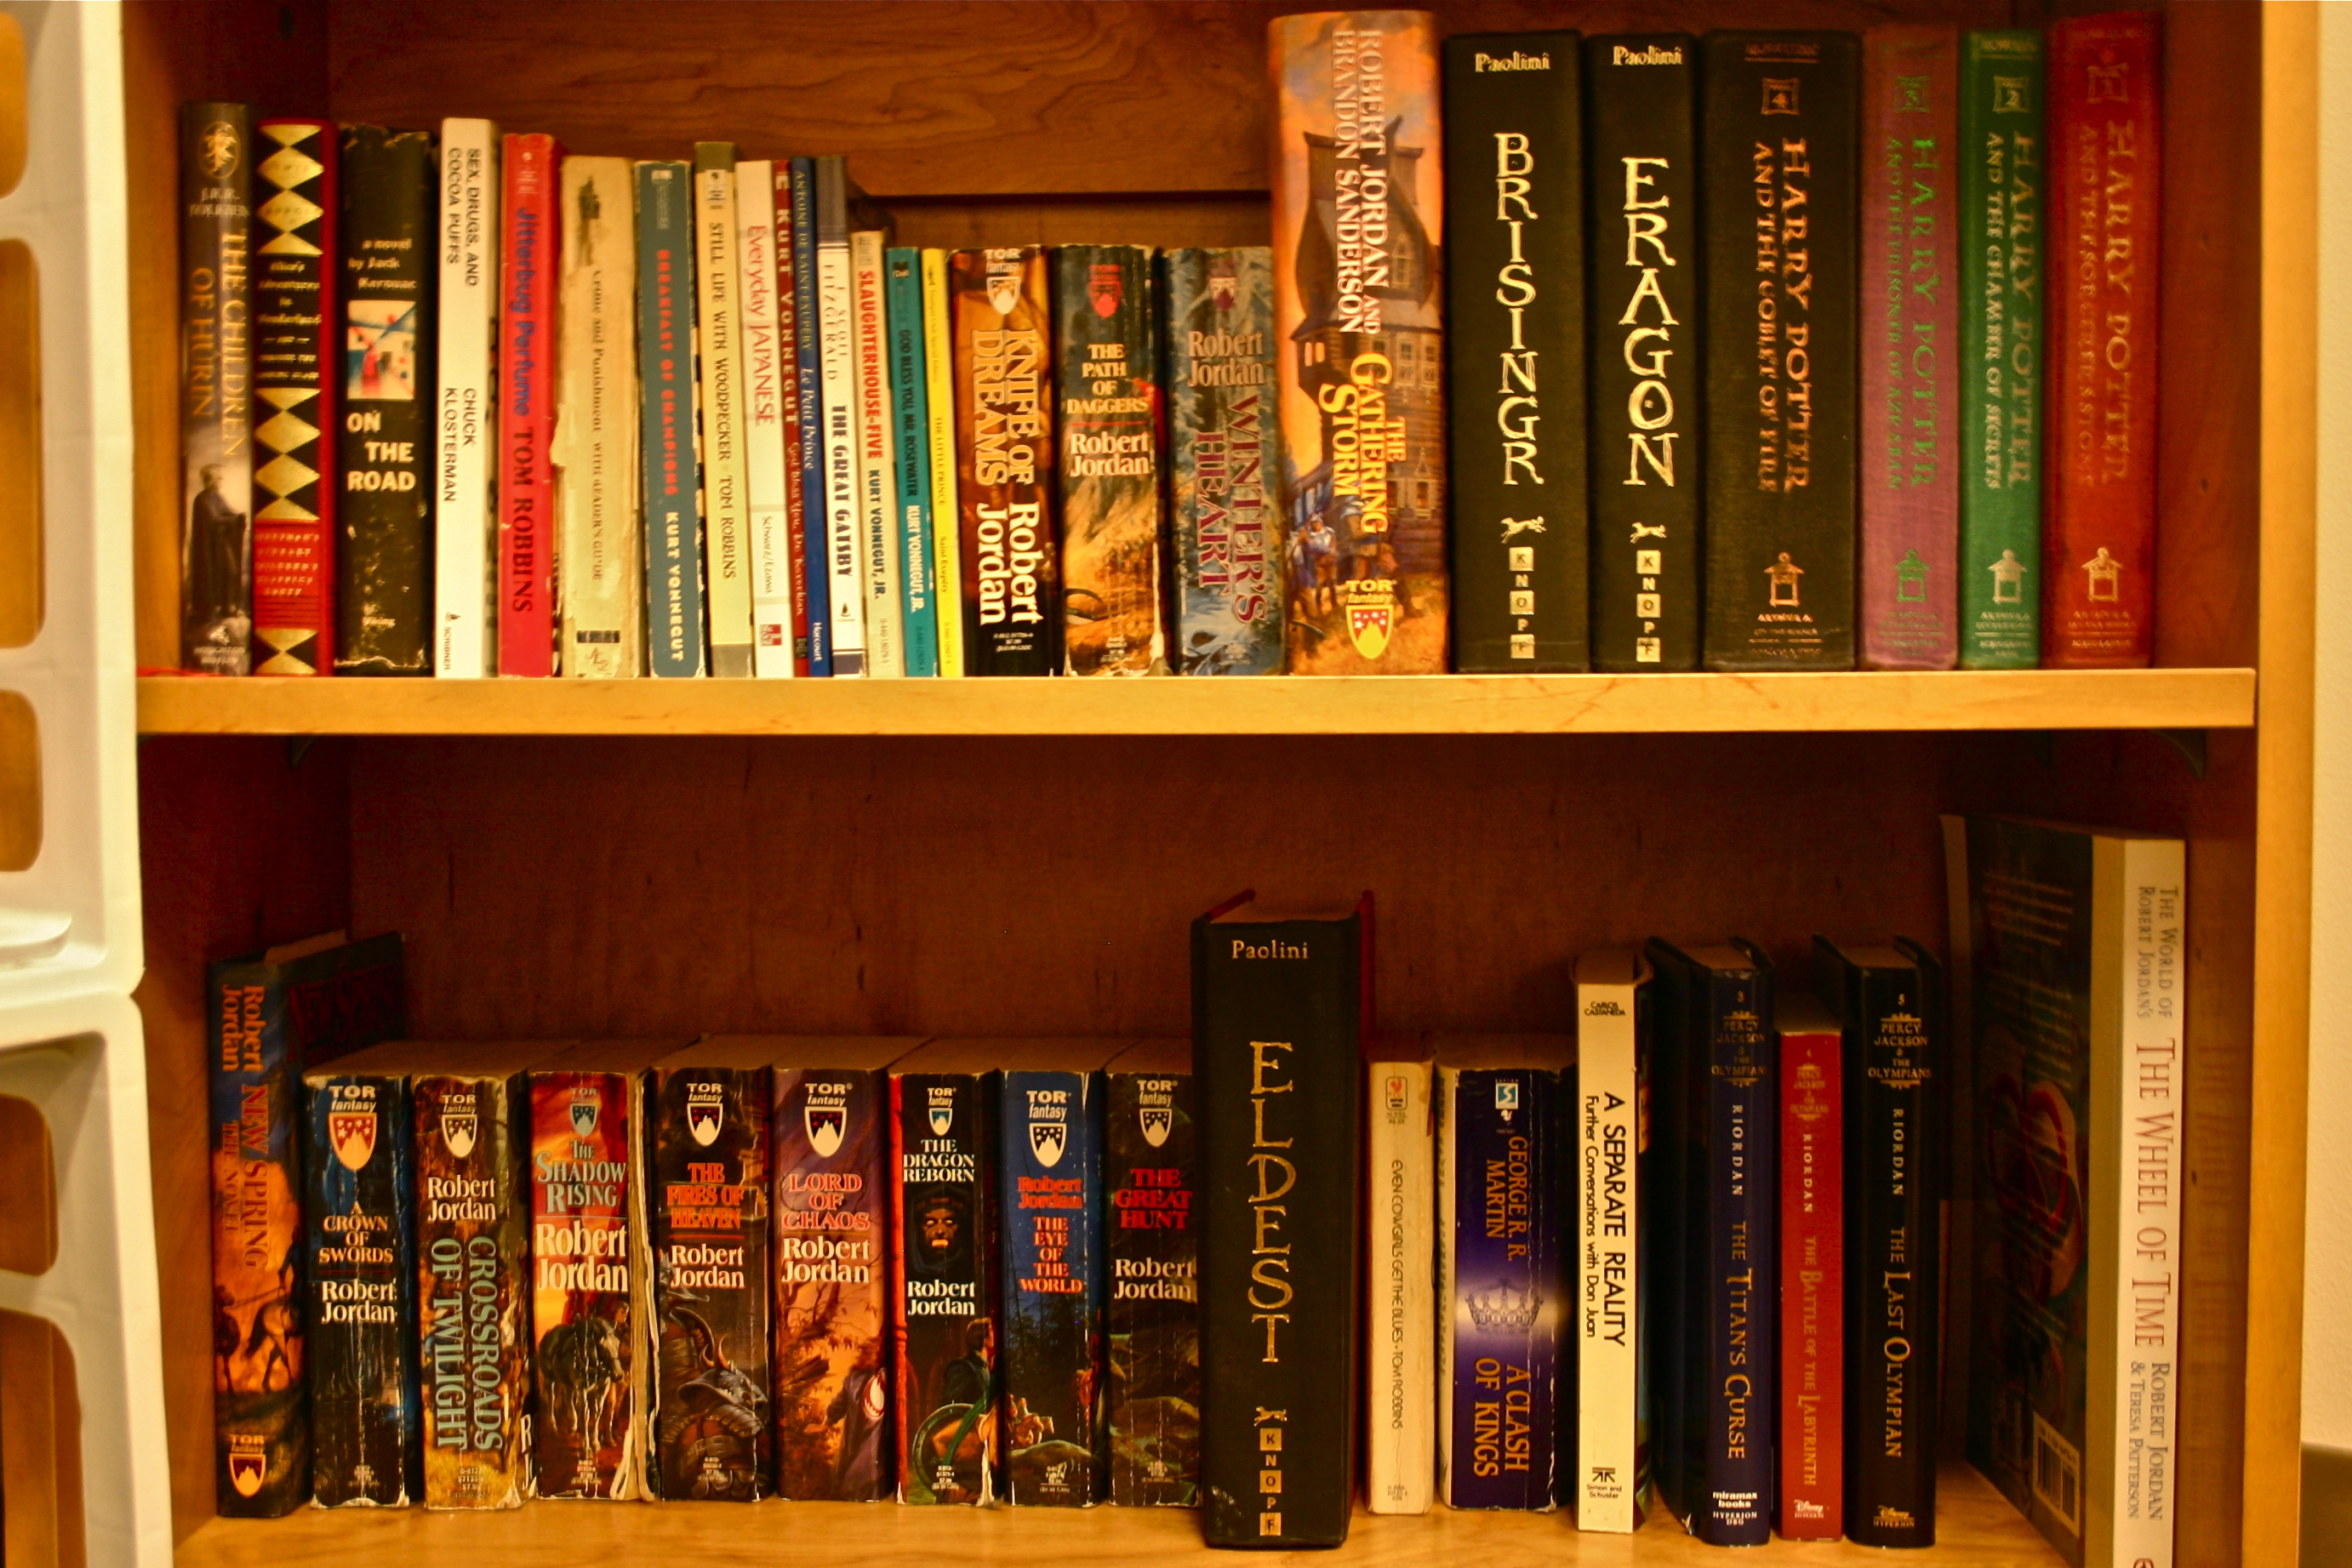 My Tiny Dorm Room Bookshelf Lack Of Sufficient Space Greatly Hindered Me From Bringing Entire Book Collection To School With But I Tried Take